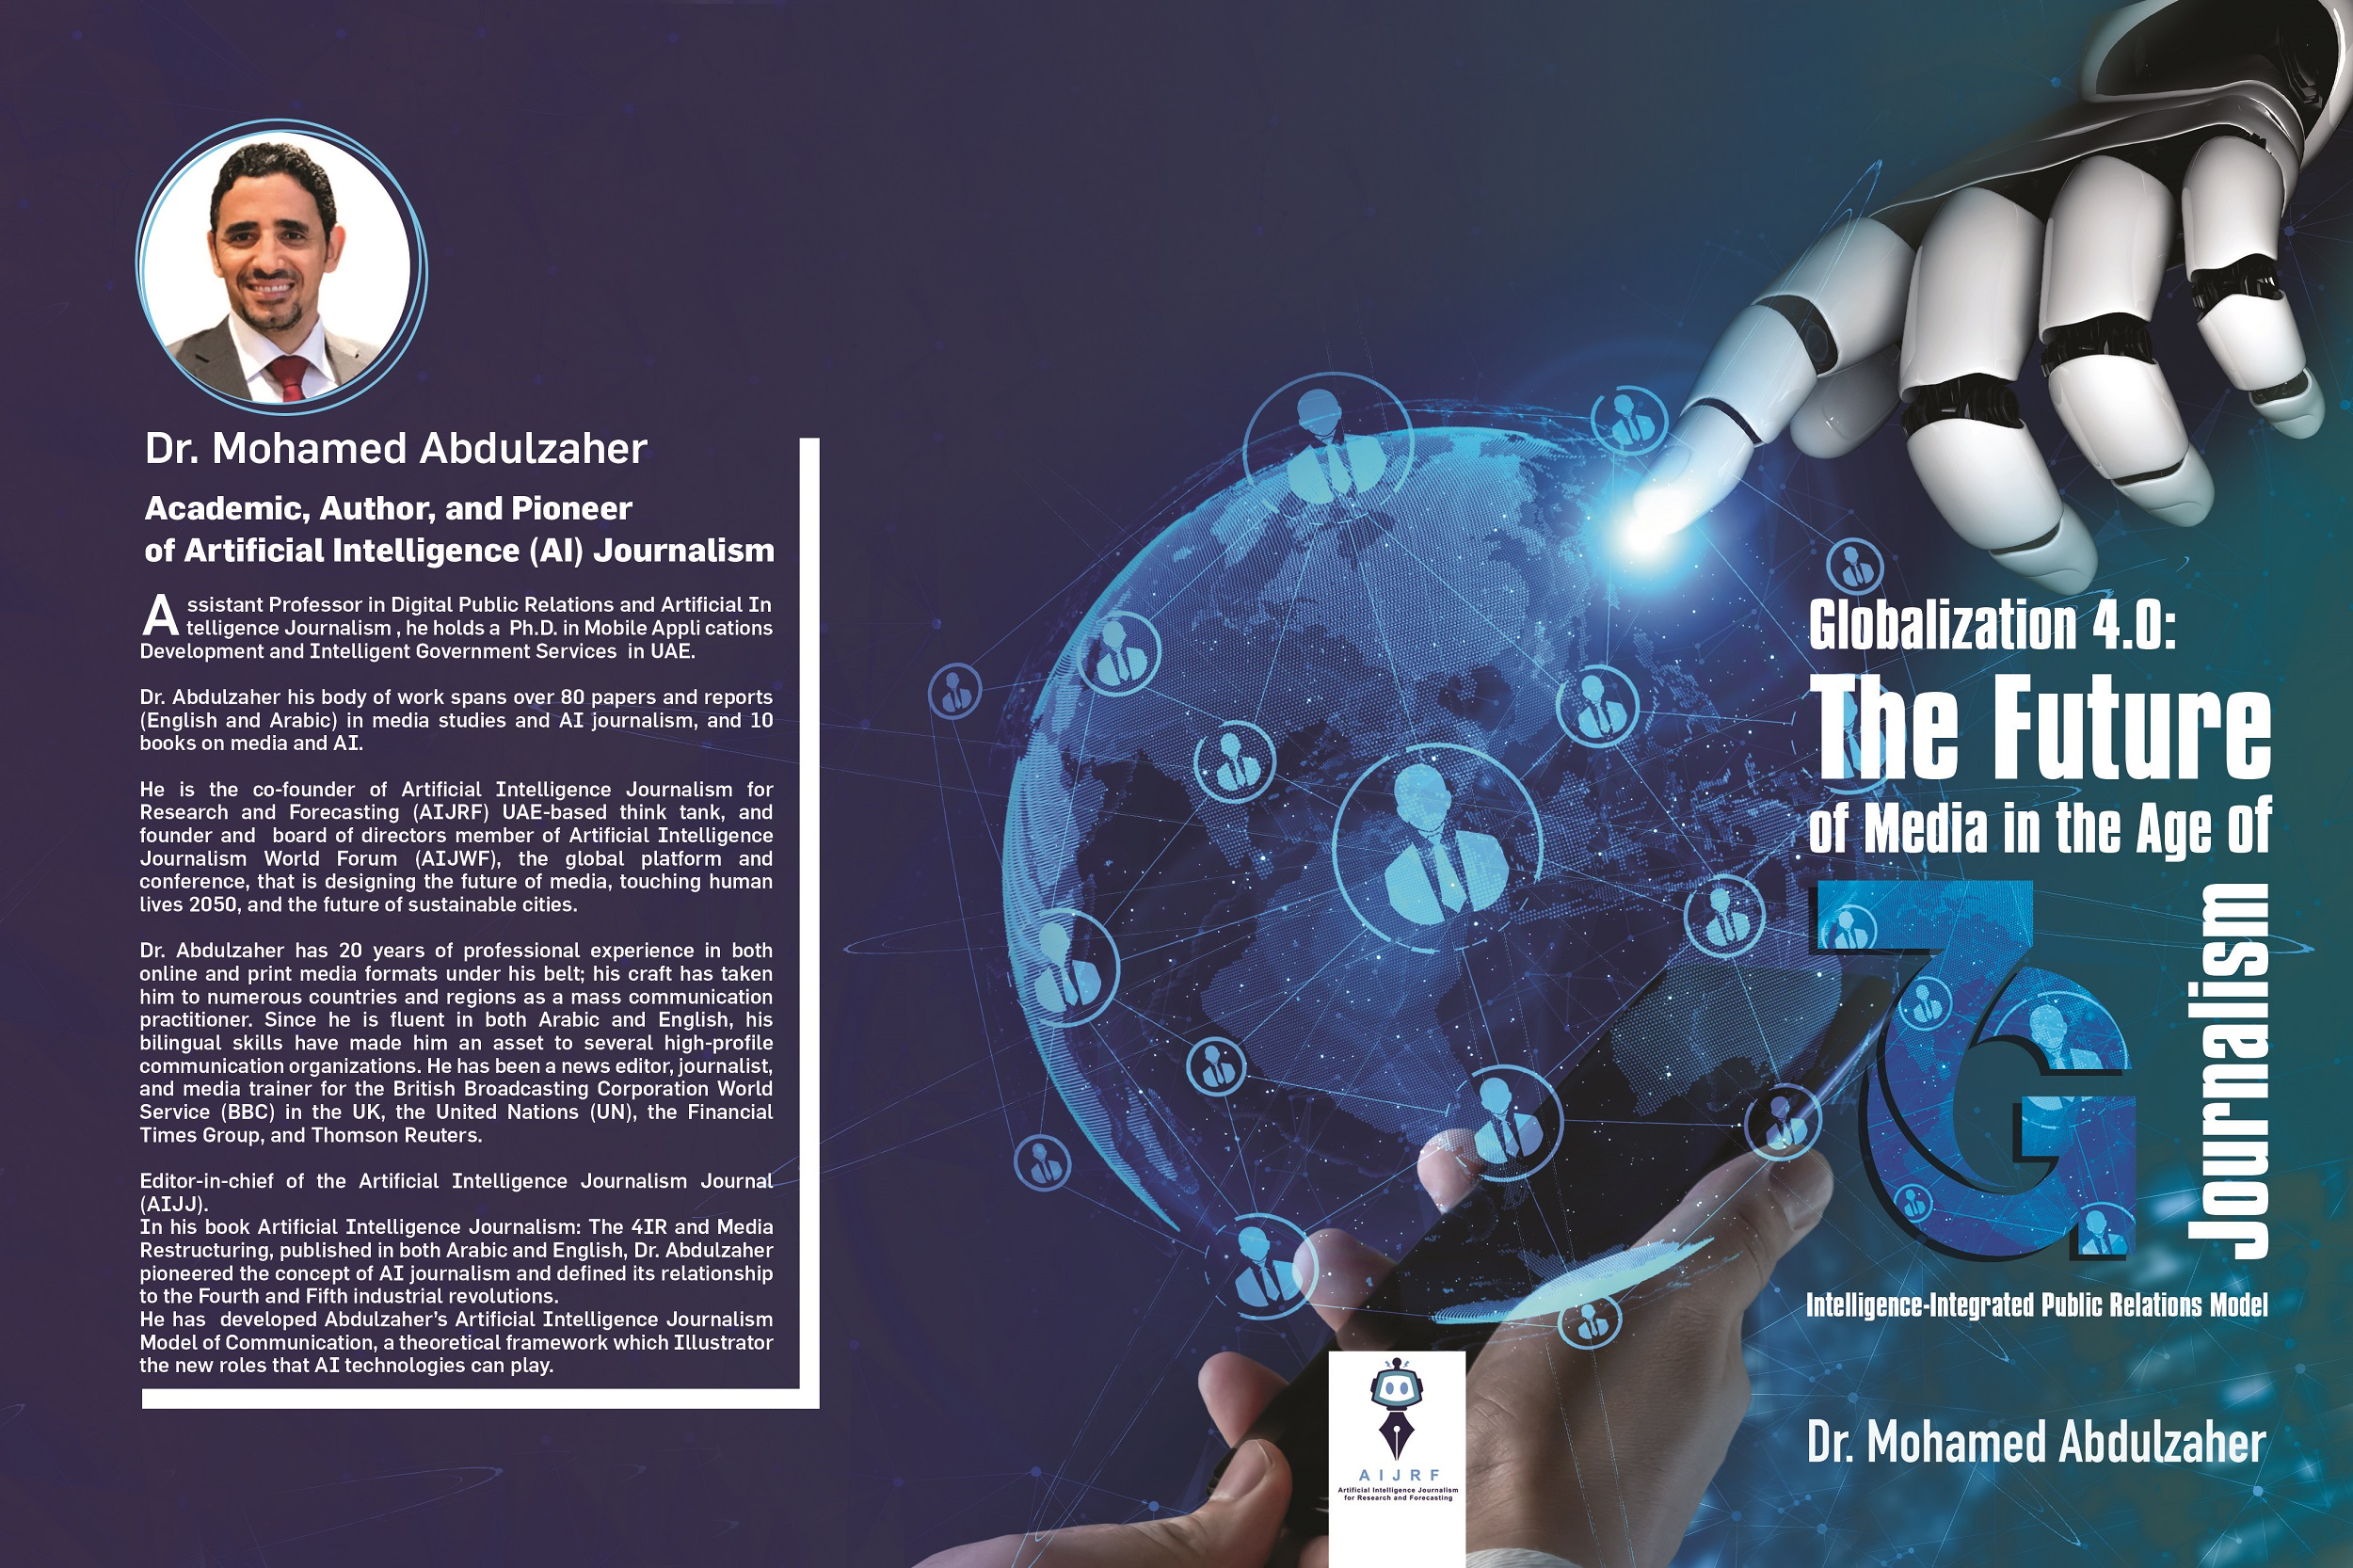 Globalization 4.0: The Future of Media in the Age of 7G Journalism